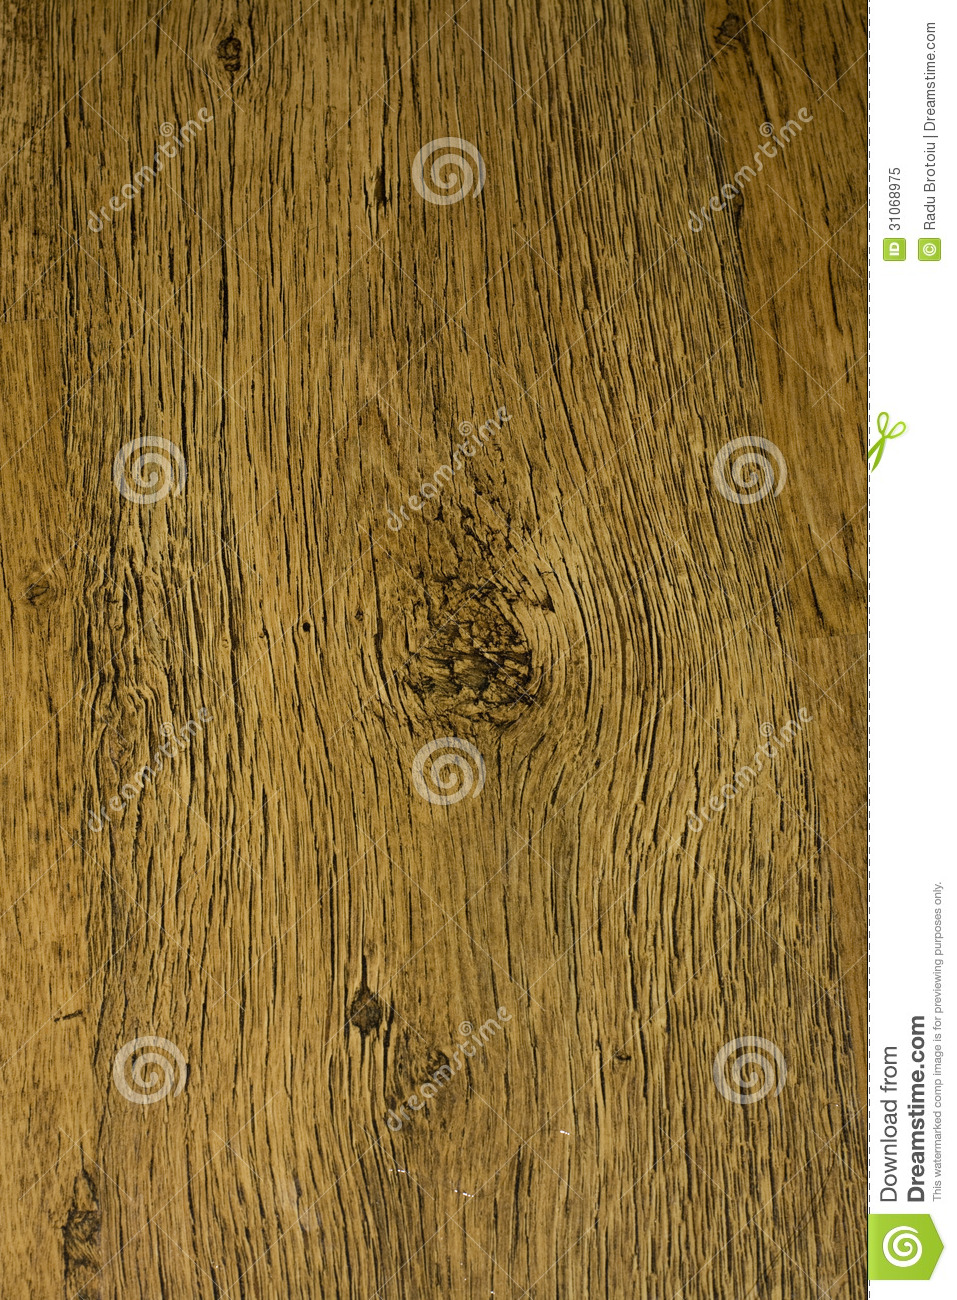 wood grain royalty free stock photo image 31068975